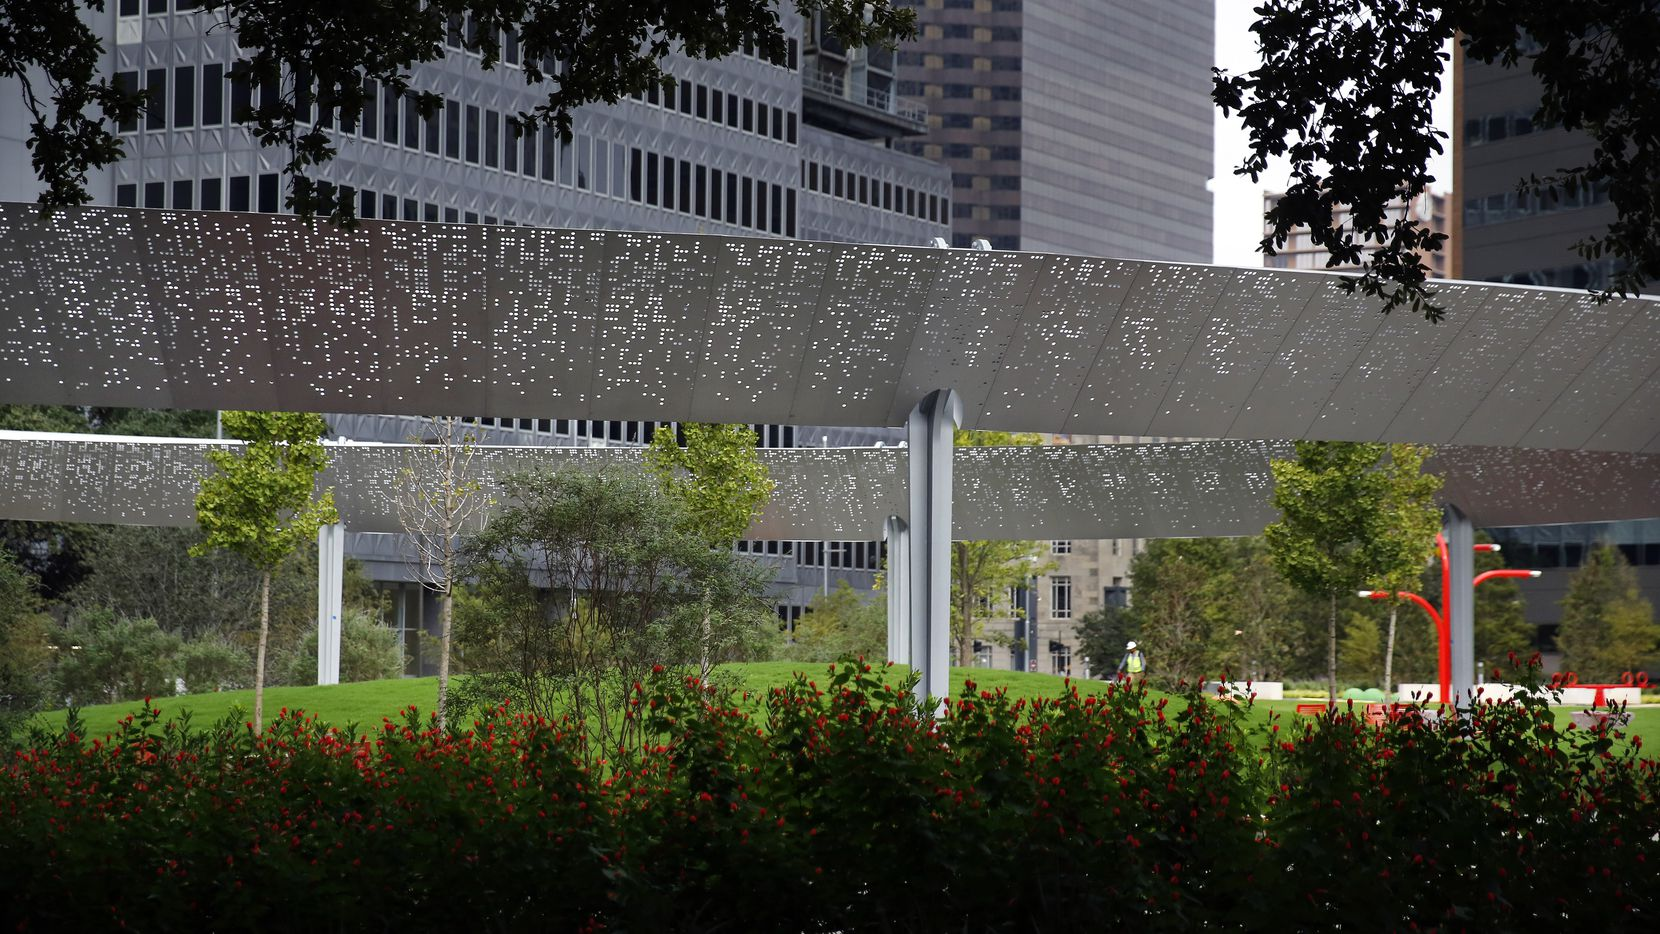 The Pavilion, a floating ovoid structure of stainless steel designed by HKS Architects, is pictured from Pacific Plaza's Aston Grove,  a garden of 23 mature live oaks that were preserved from a tiny 1980s-era green space.